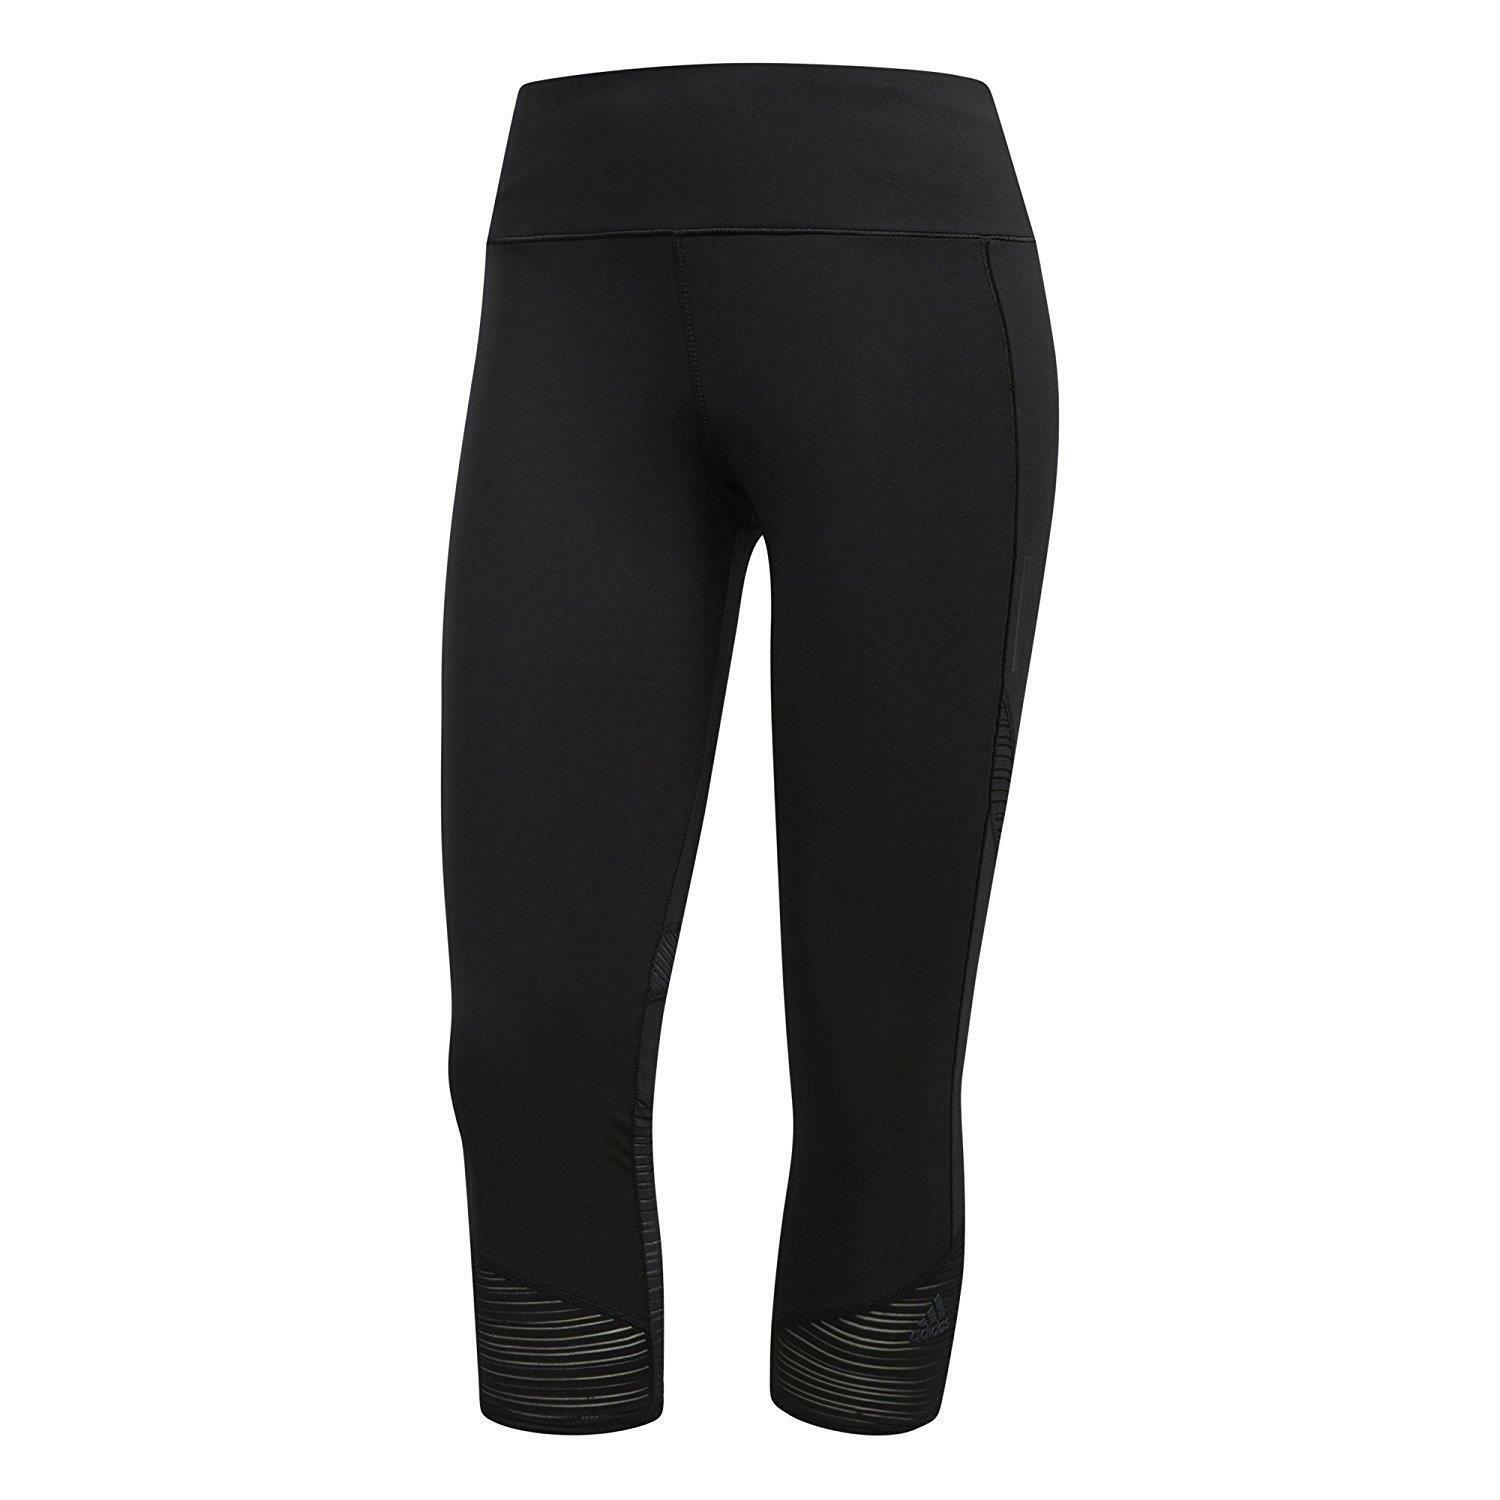 Adidas Women's How We Do 3 4 Lightweight Running Leggings